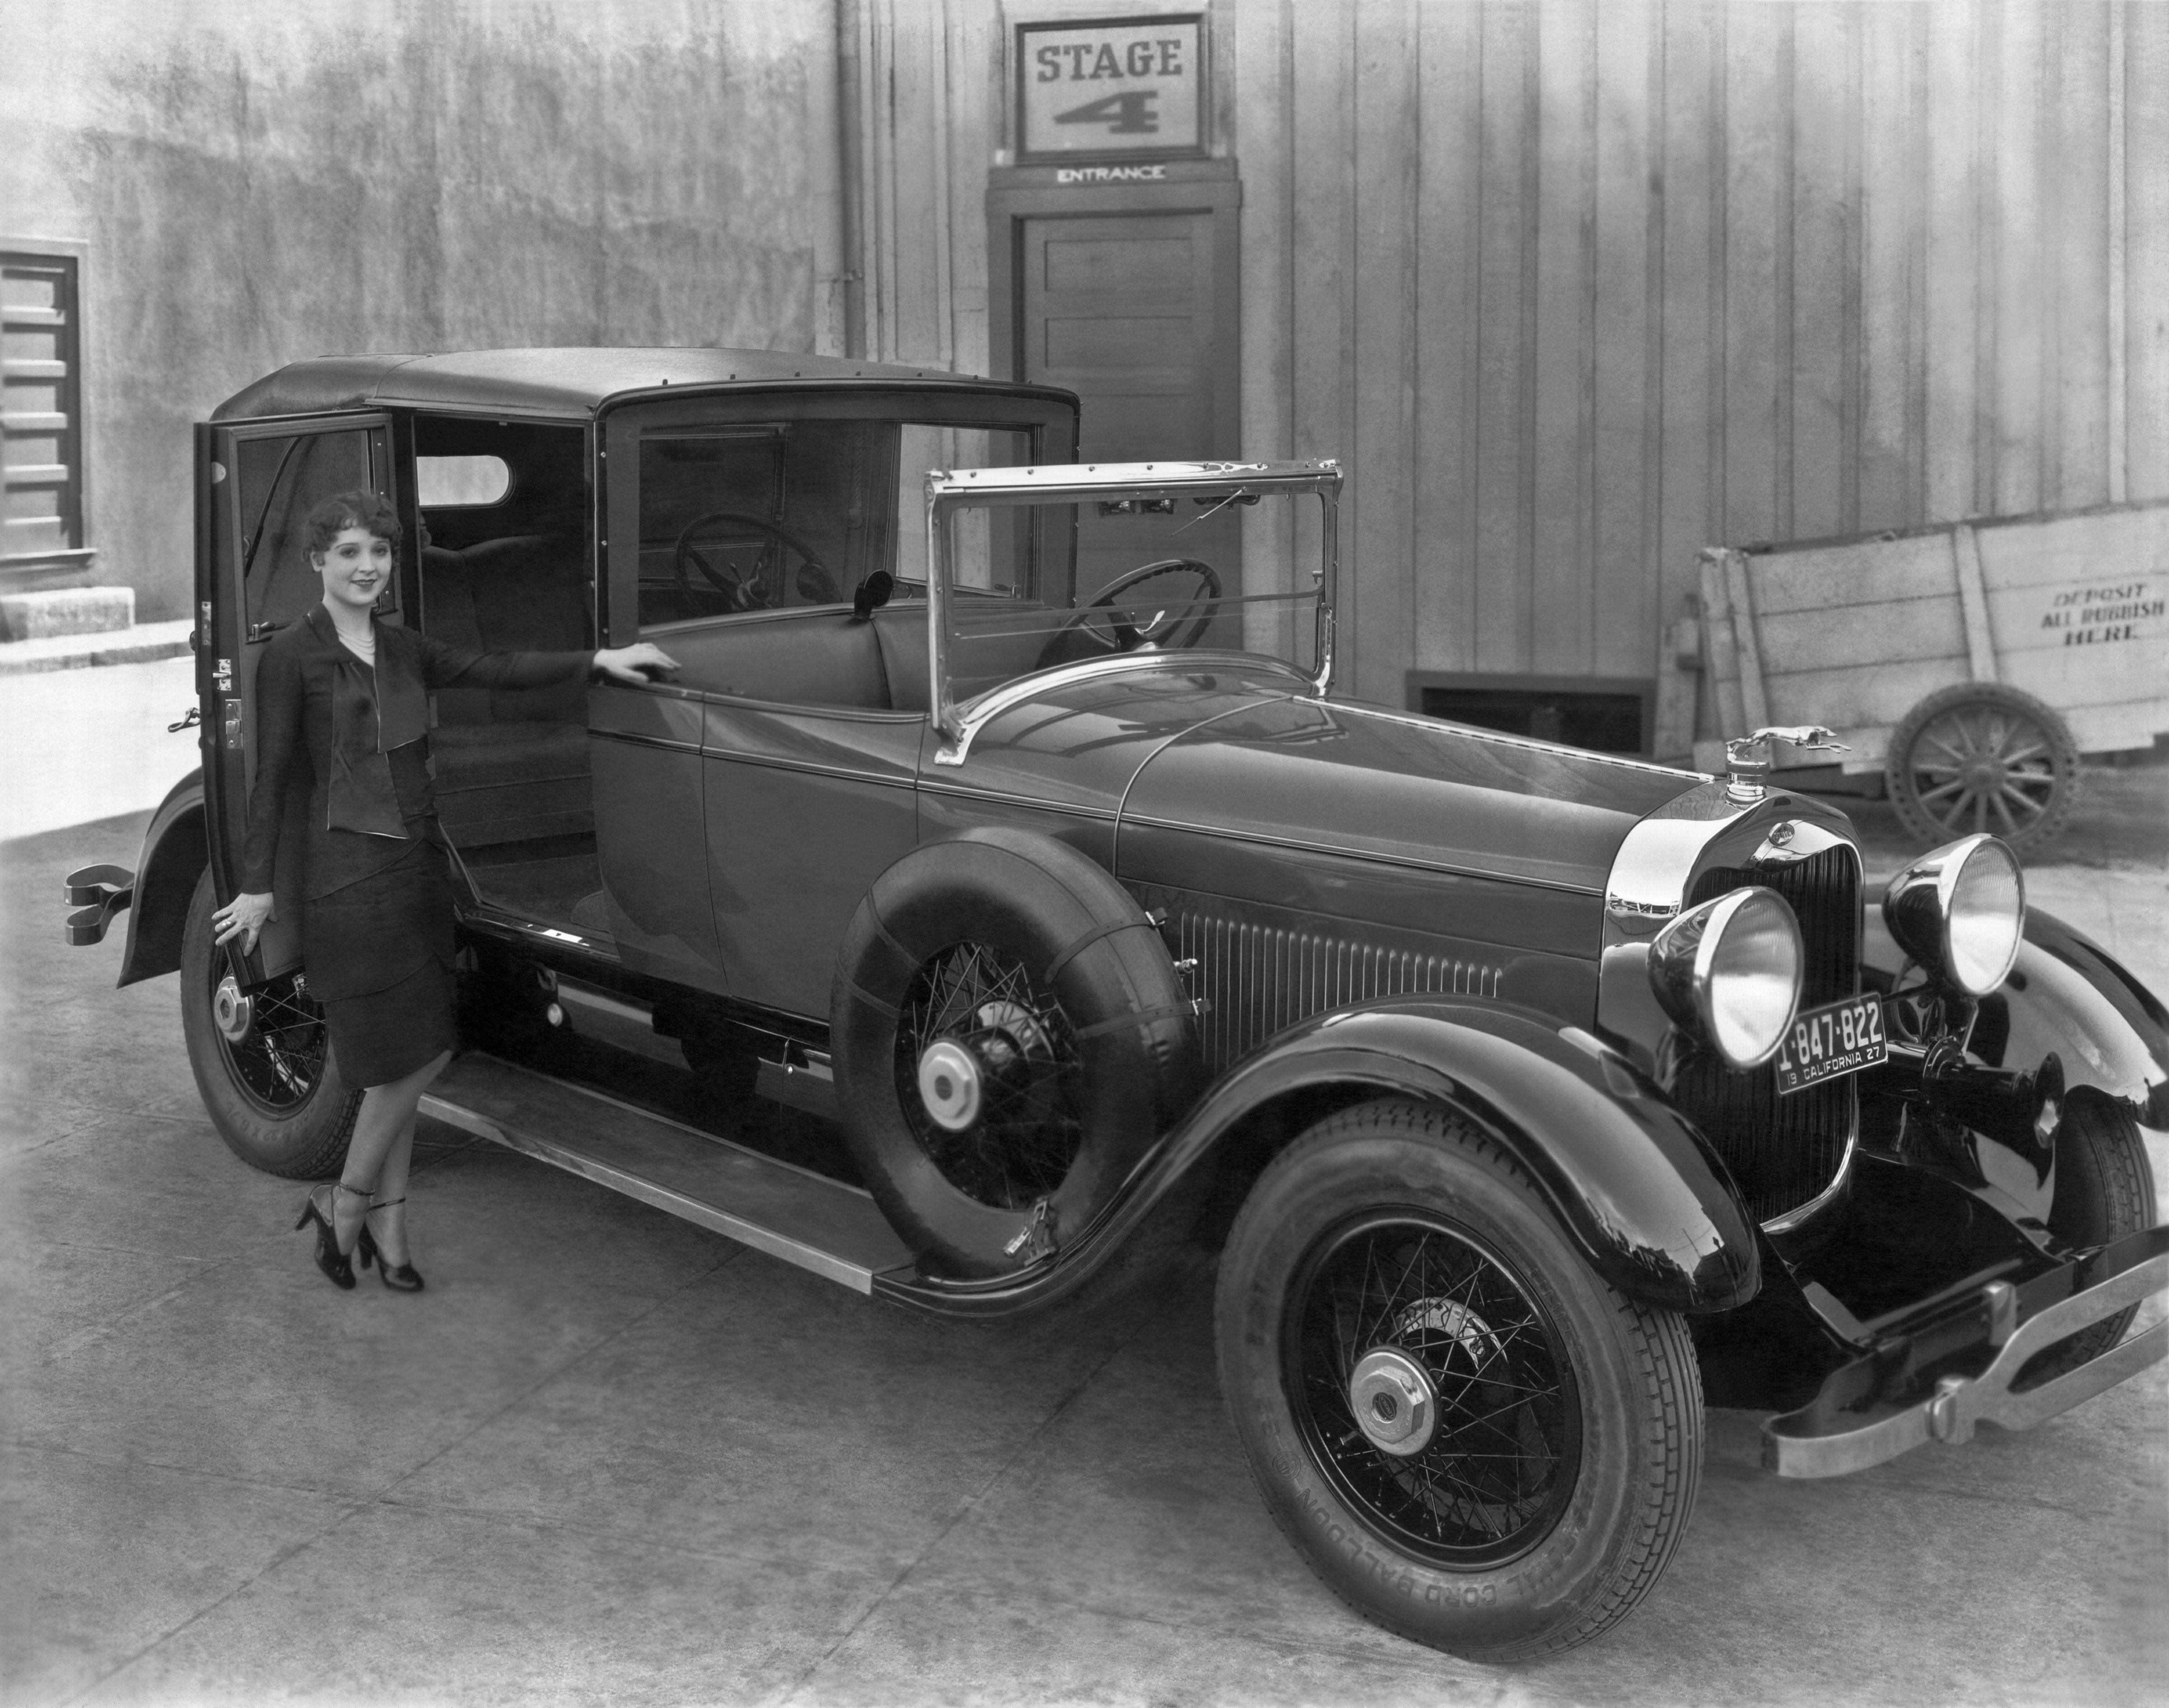 Mandatory Credit: Photo by Underwood Archives/Shutterstock (4437299a) Hollywood, California: 1927. A young woman prepares to enter the rear compartment of a 1927 Lincoln L-series towncar. VARIOUS